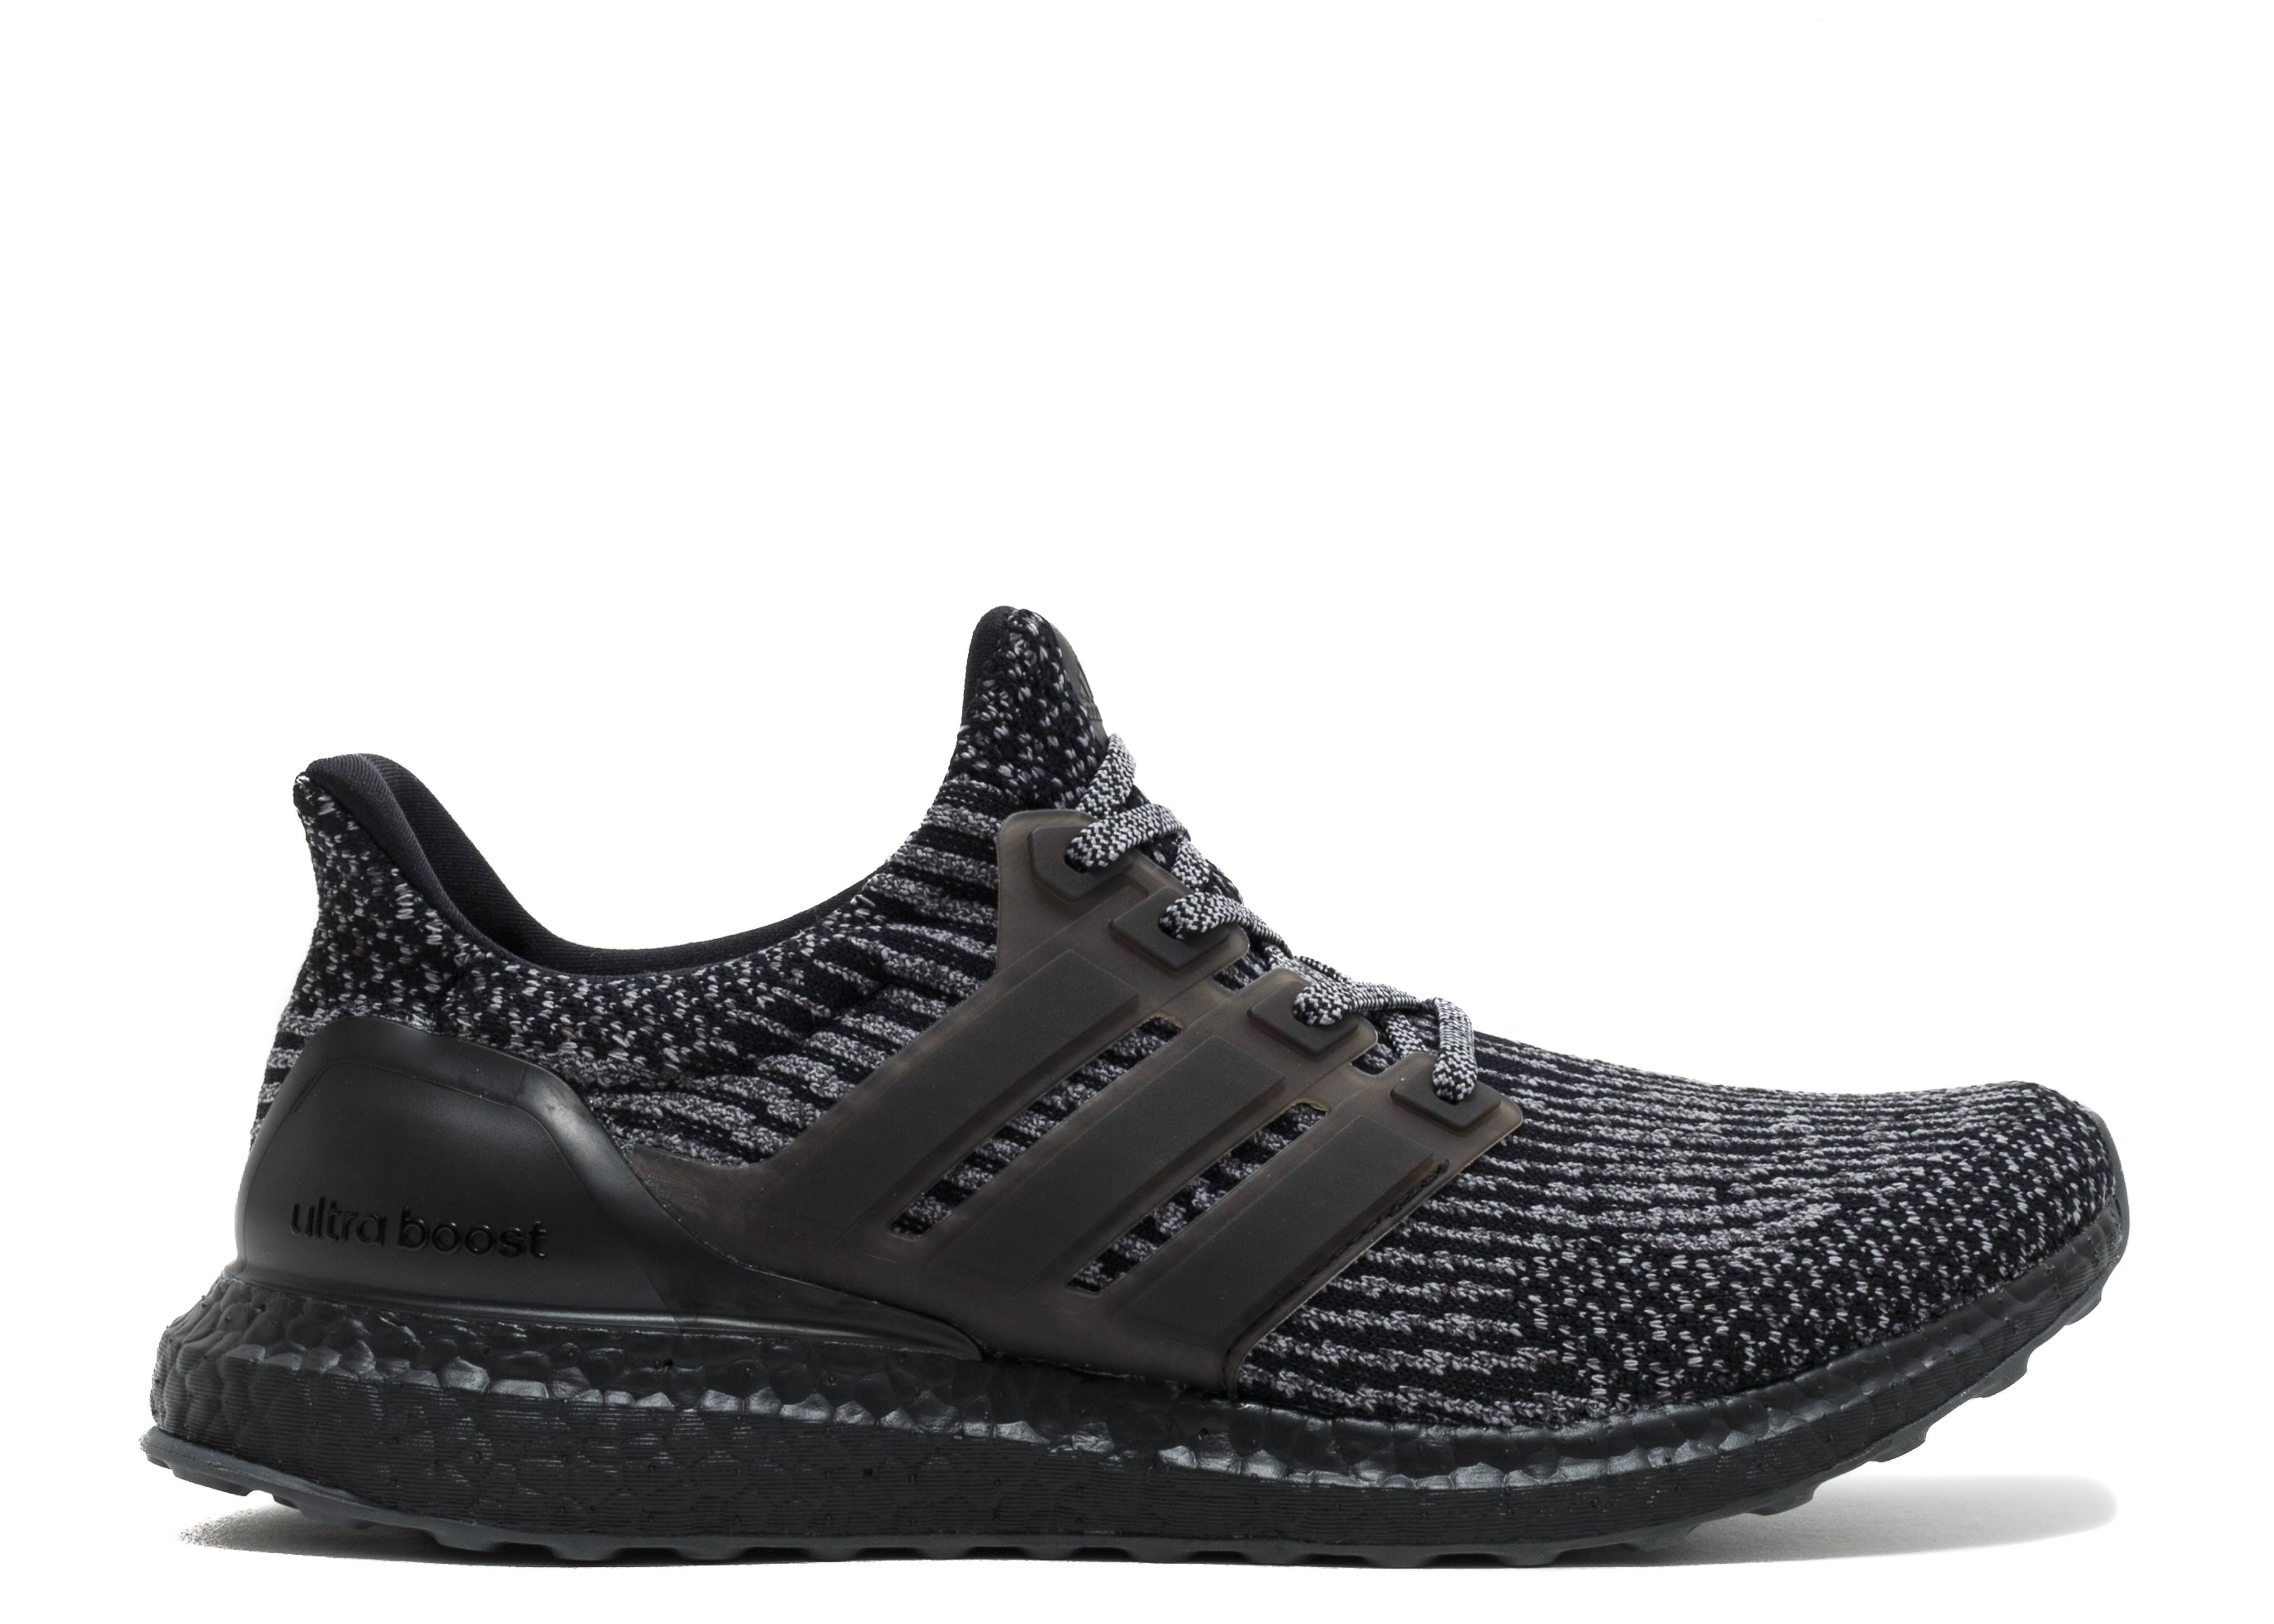 ADIDAS ULTRA BOOST 3.0 REVIEW